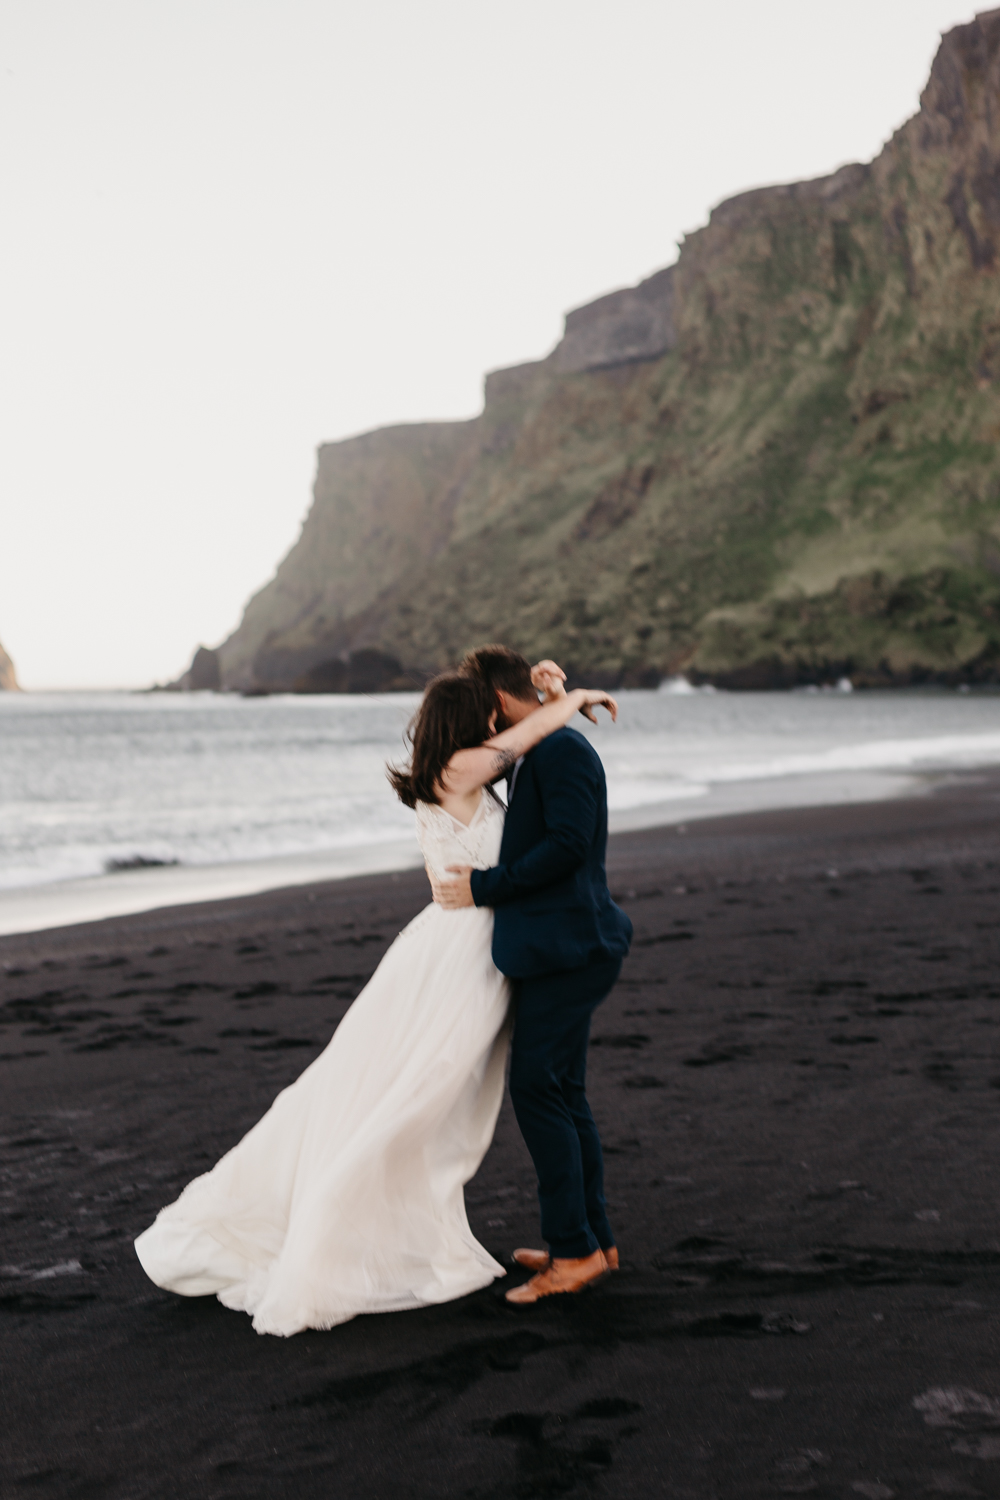 anna szczekutowicz iceland wedding photogapher elopement photographer-105.jpg